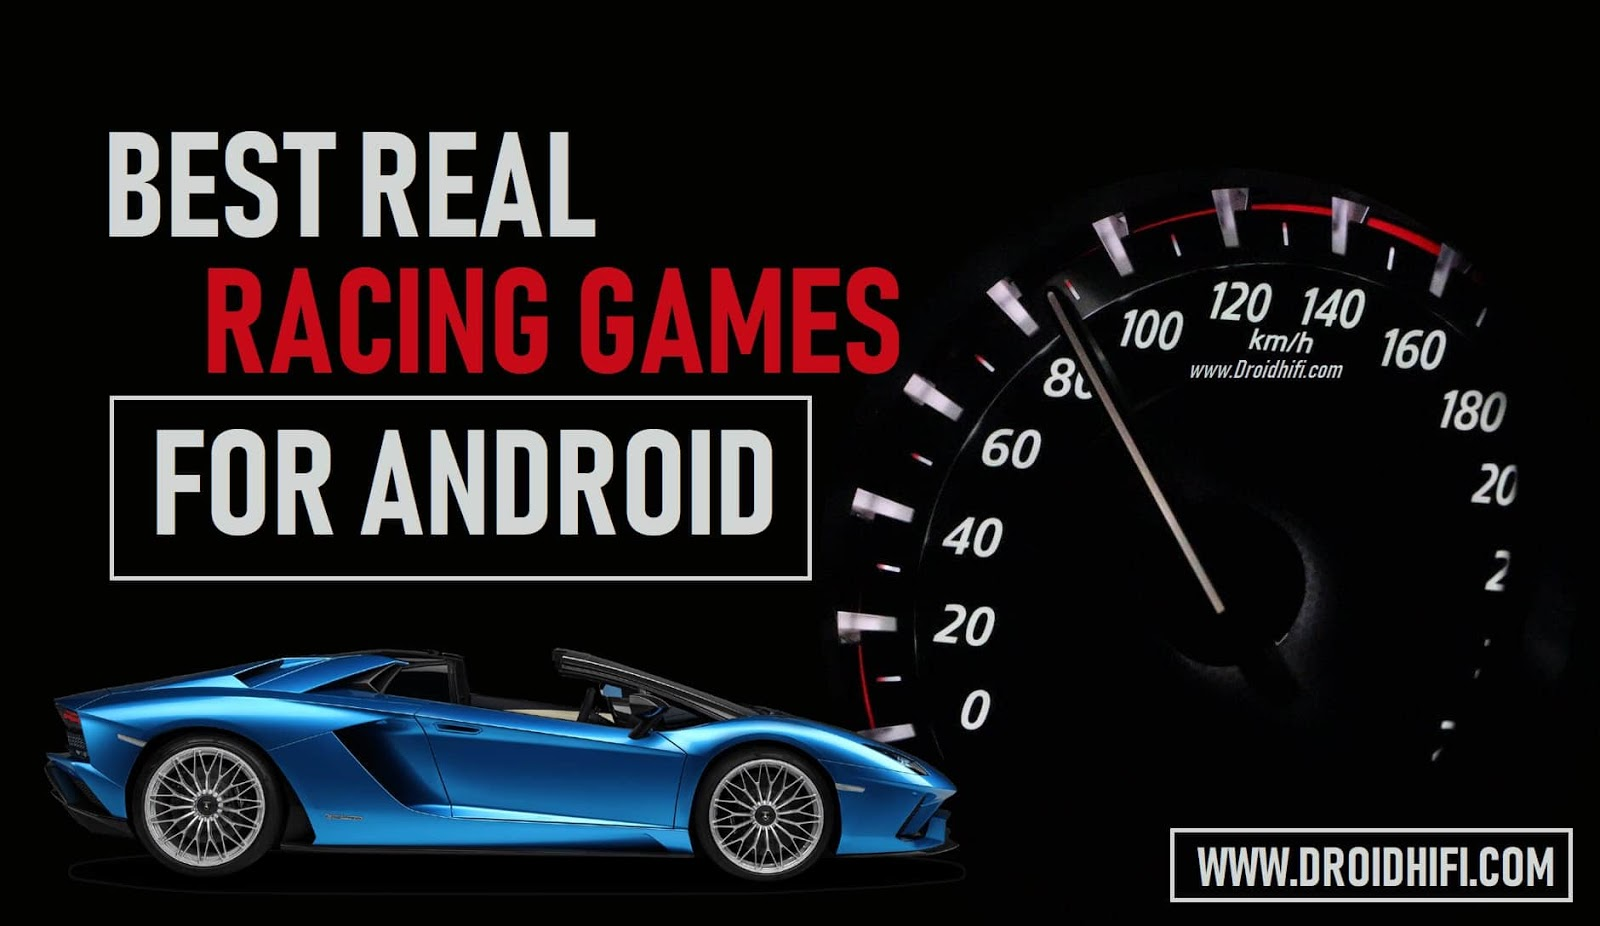 Best Real Racing Games For Android - You Must Play (Update